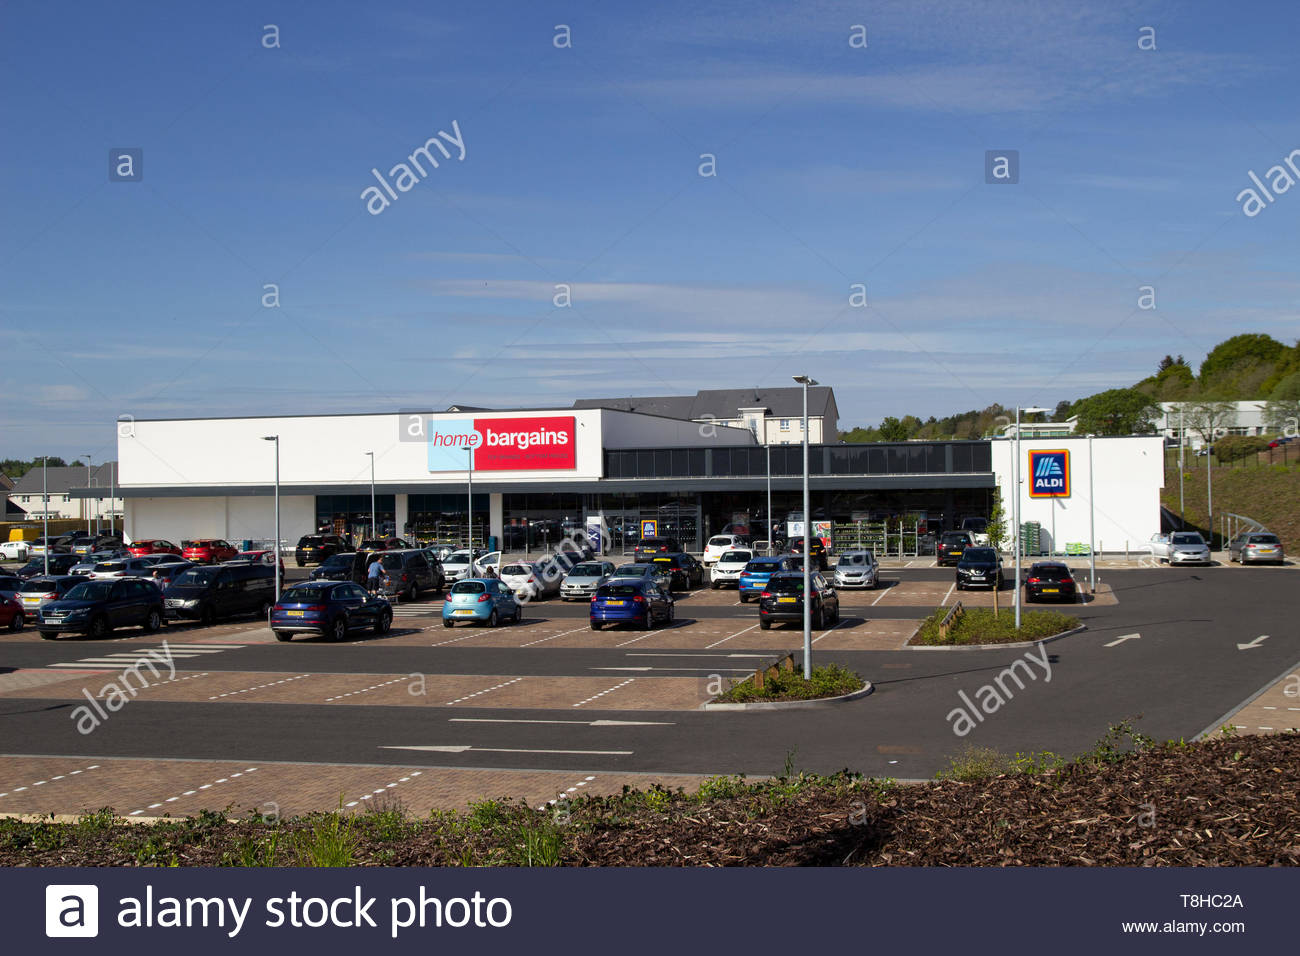 Home Bargains and Aldi stores on the old Rolls-Royce site in East Kilbride Stock Photo